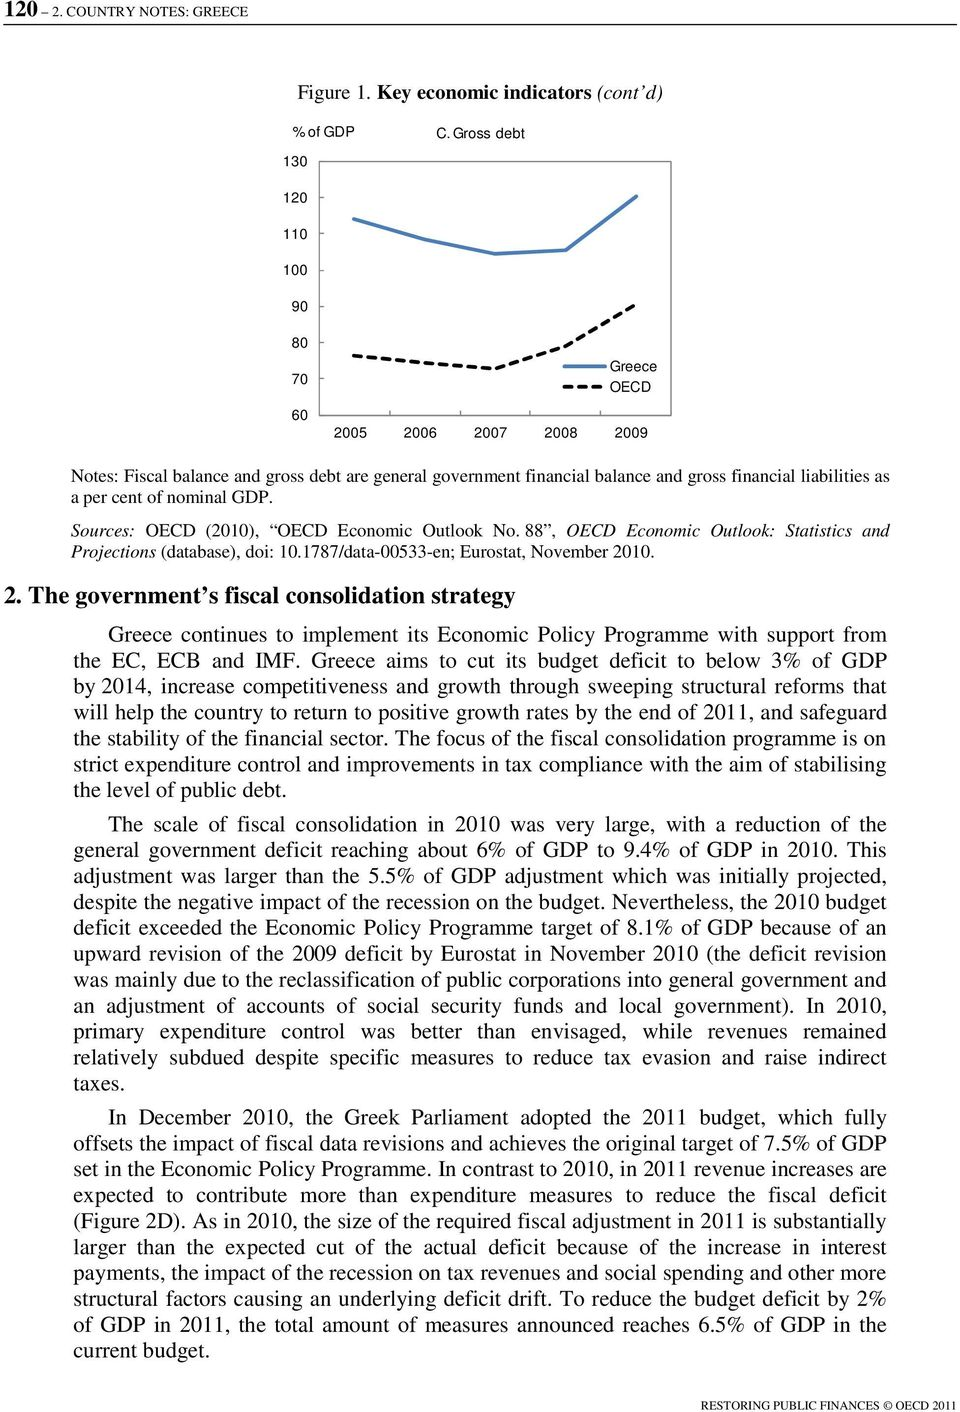 Sources: OECD (21), OECD Economic Outlook No. 88, OECD Economic Outlook: Statistics and Projections (database), doi: 1.1787/data-533-en; Eurostat, November 21